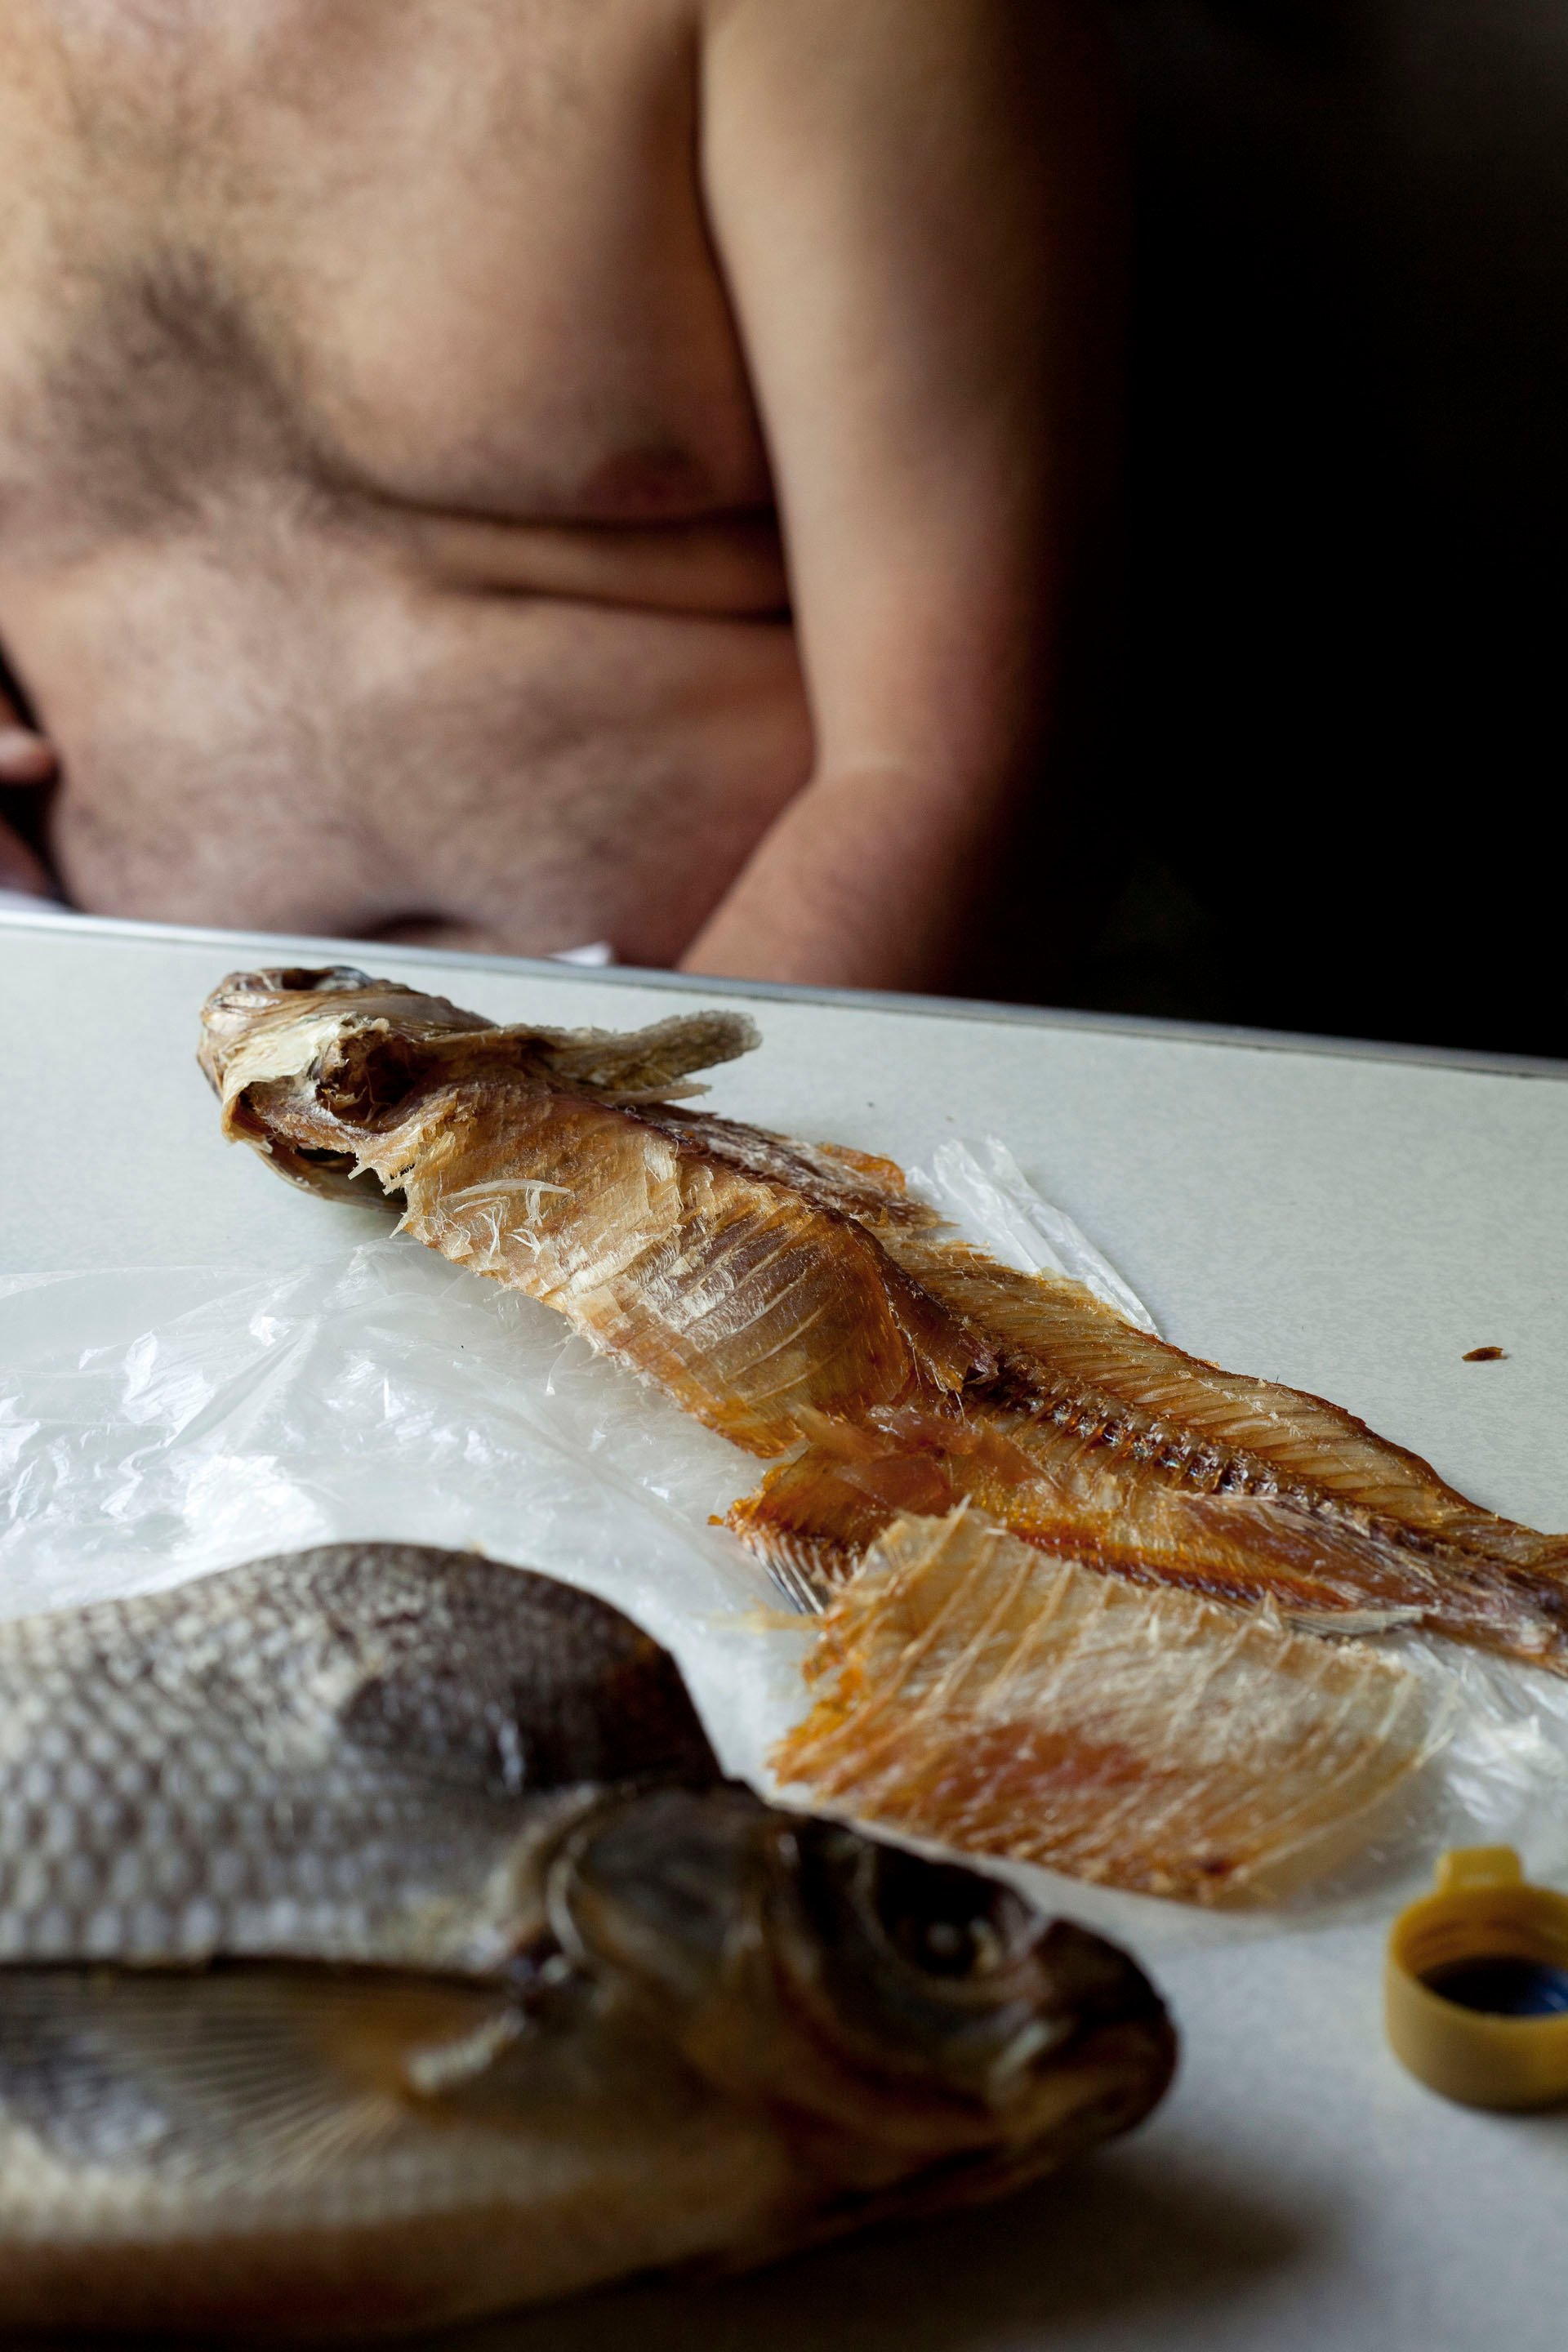 Dried fish eaten by construction workers on their multi-day train commute from work to home